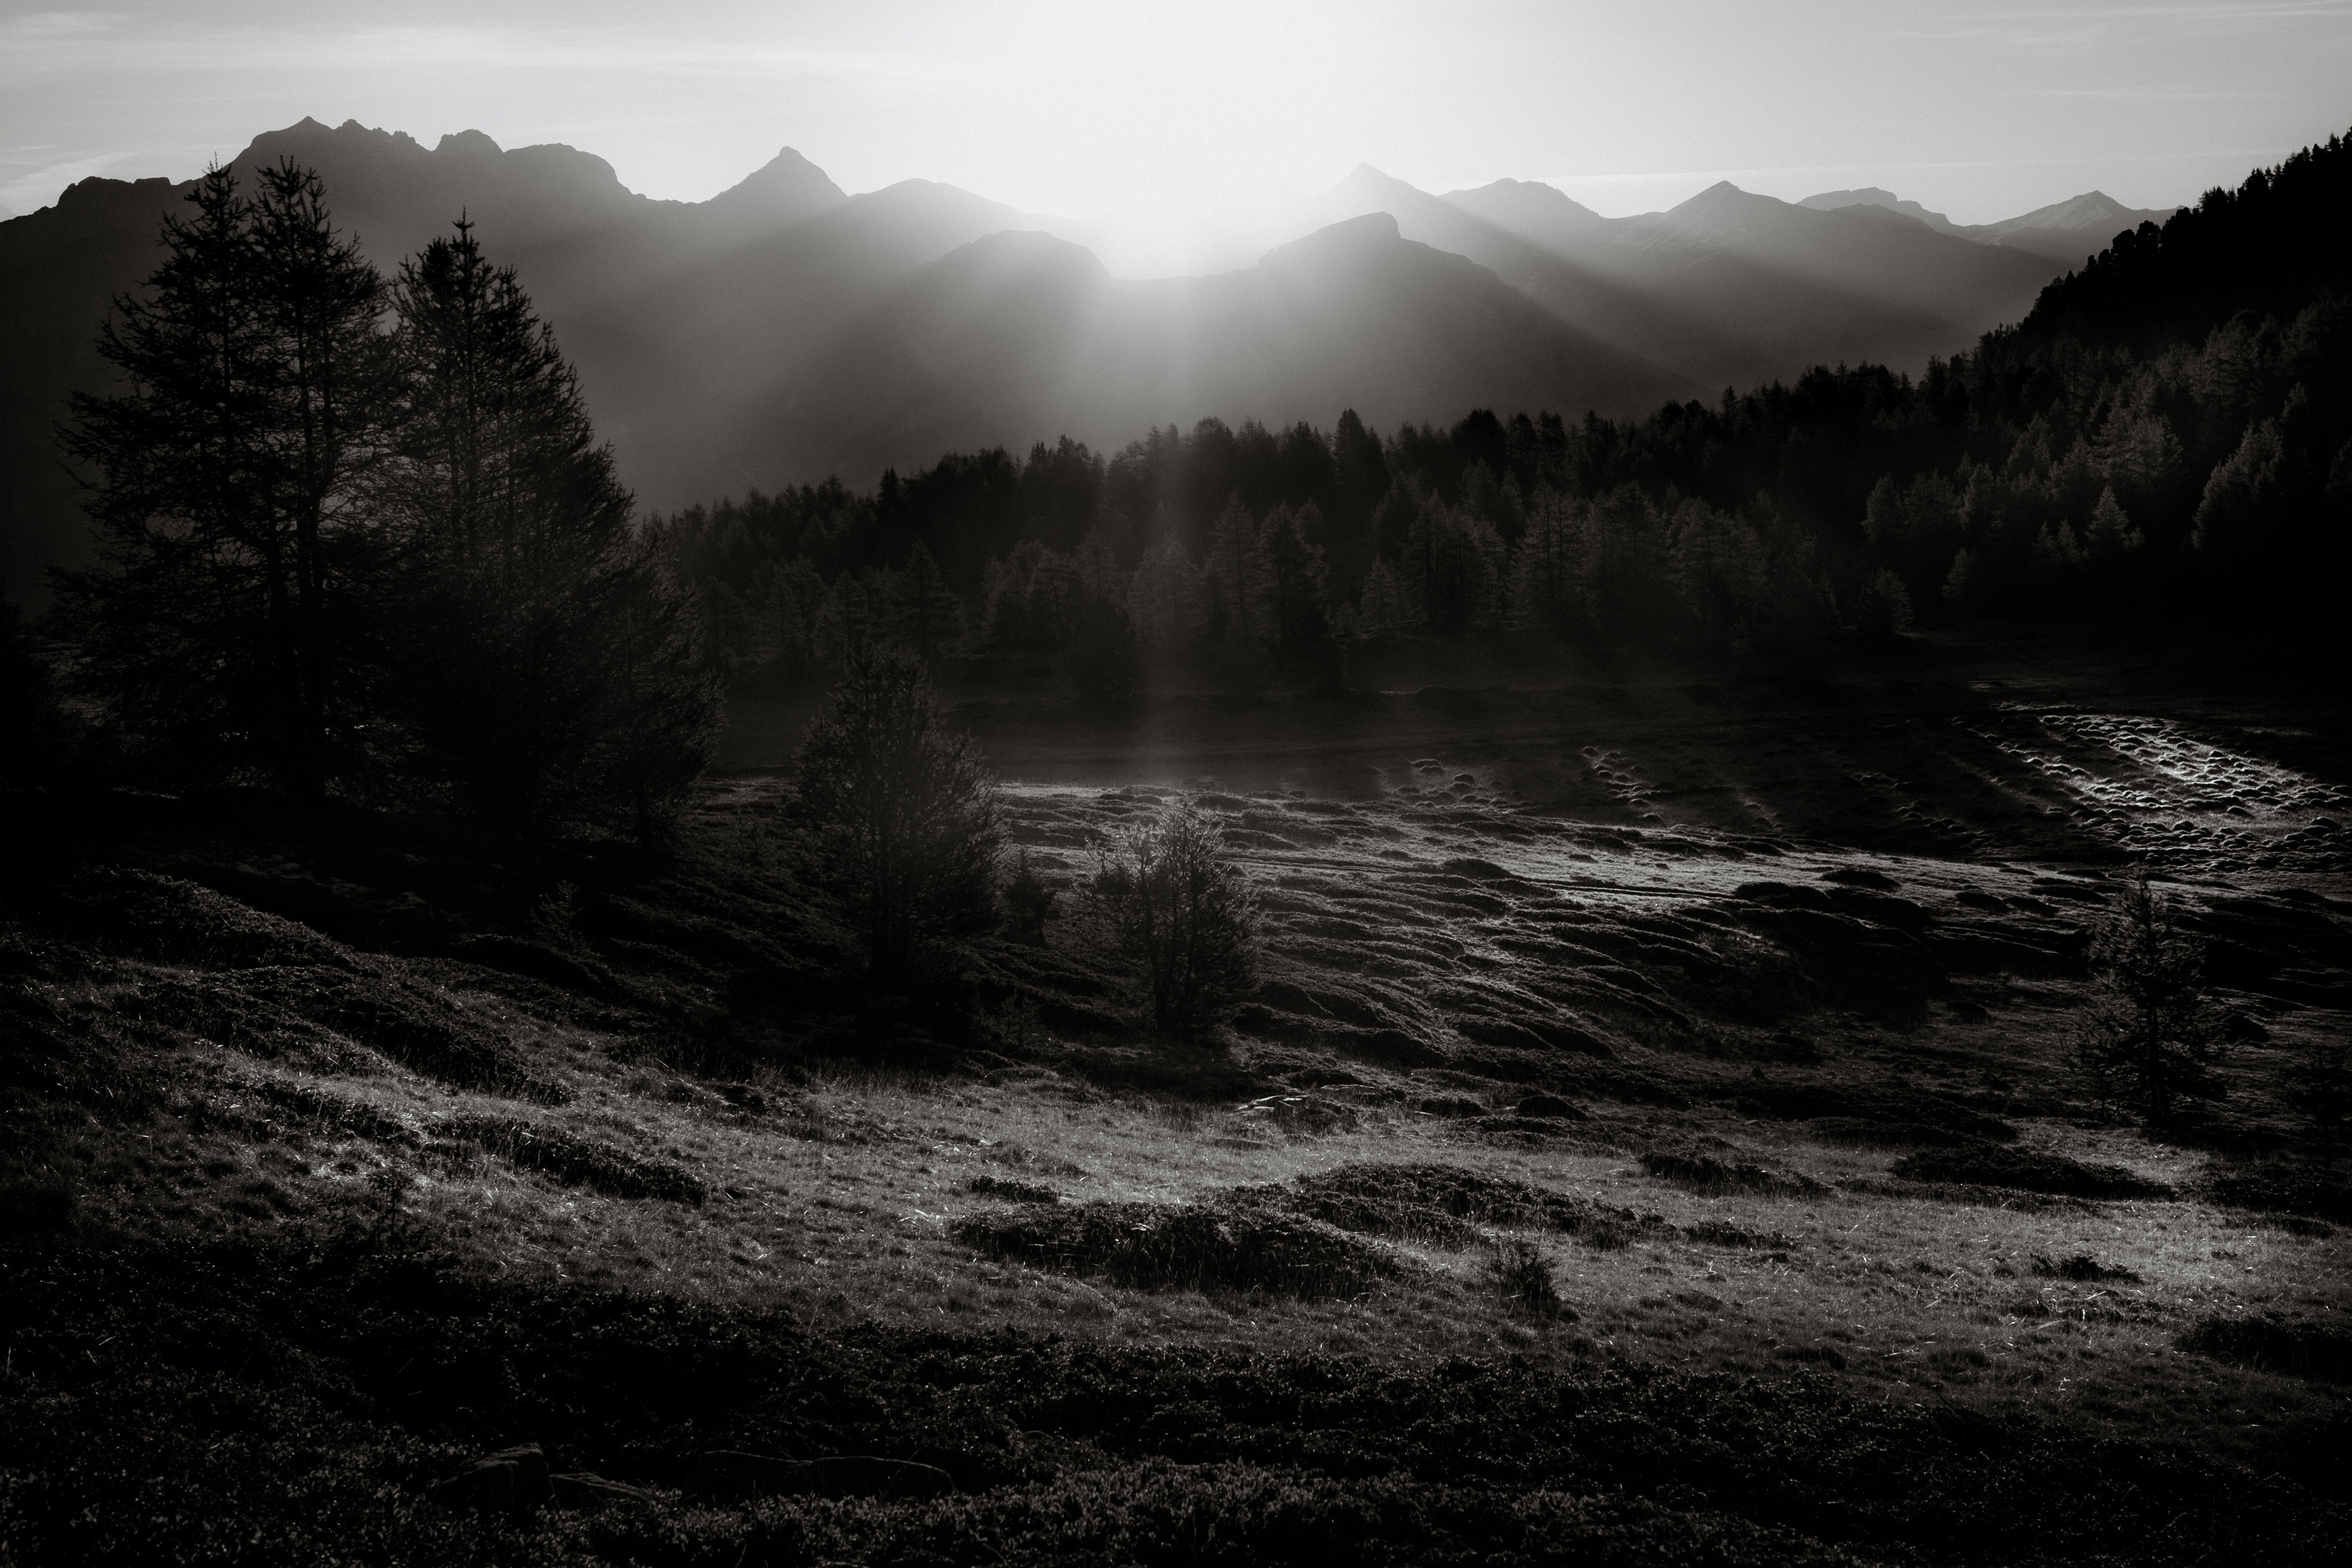 grayscale photography of trees near mountains